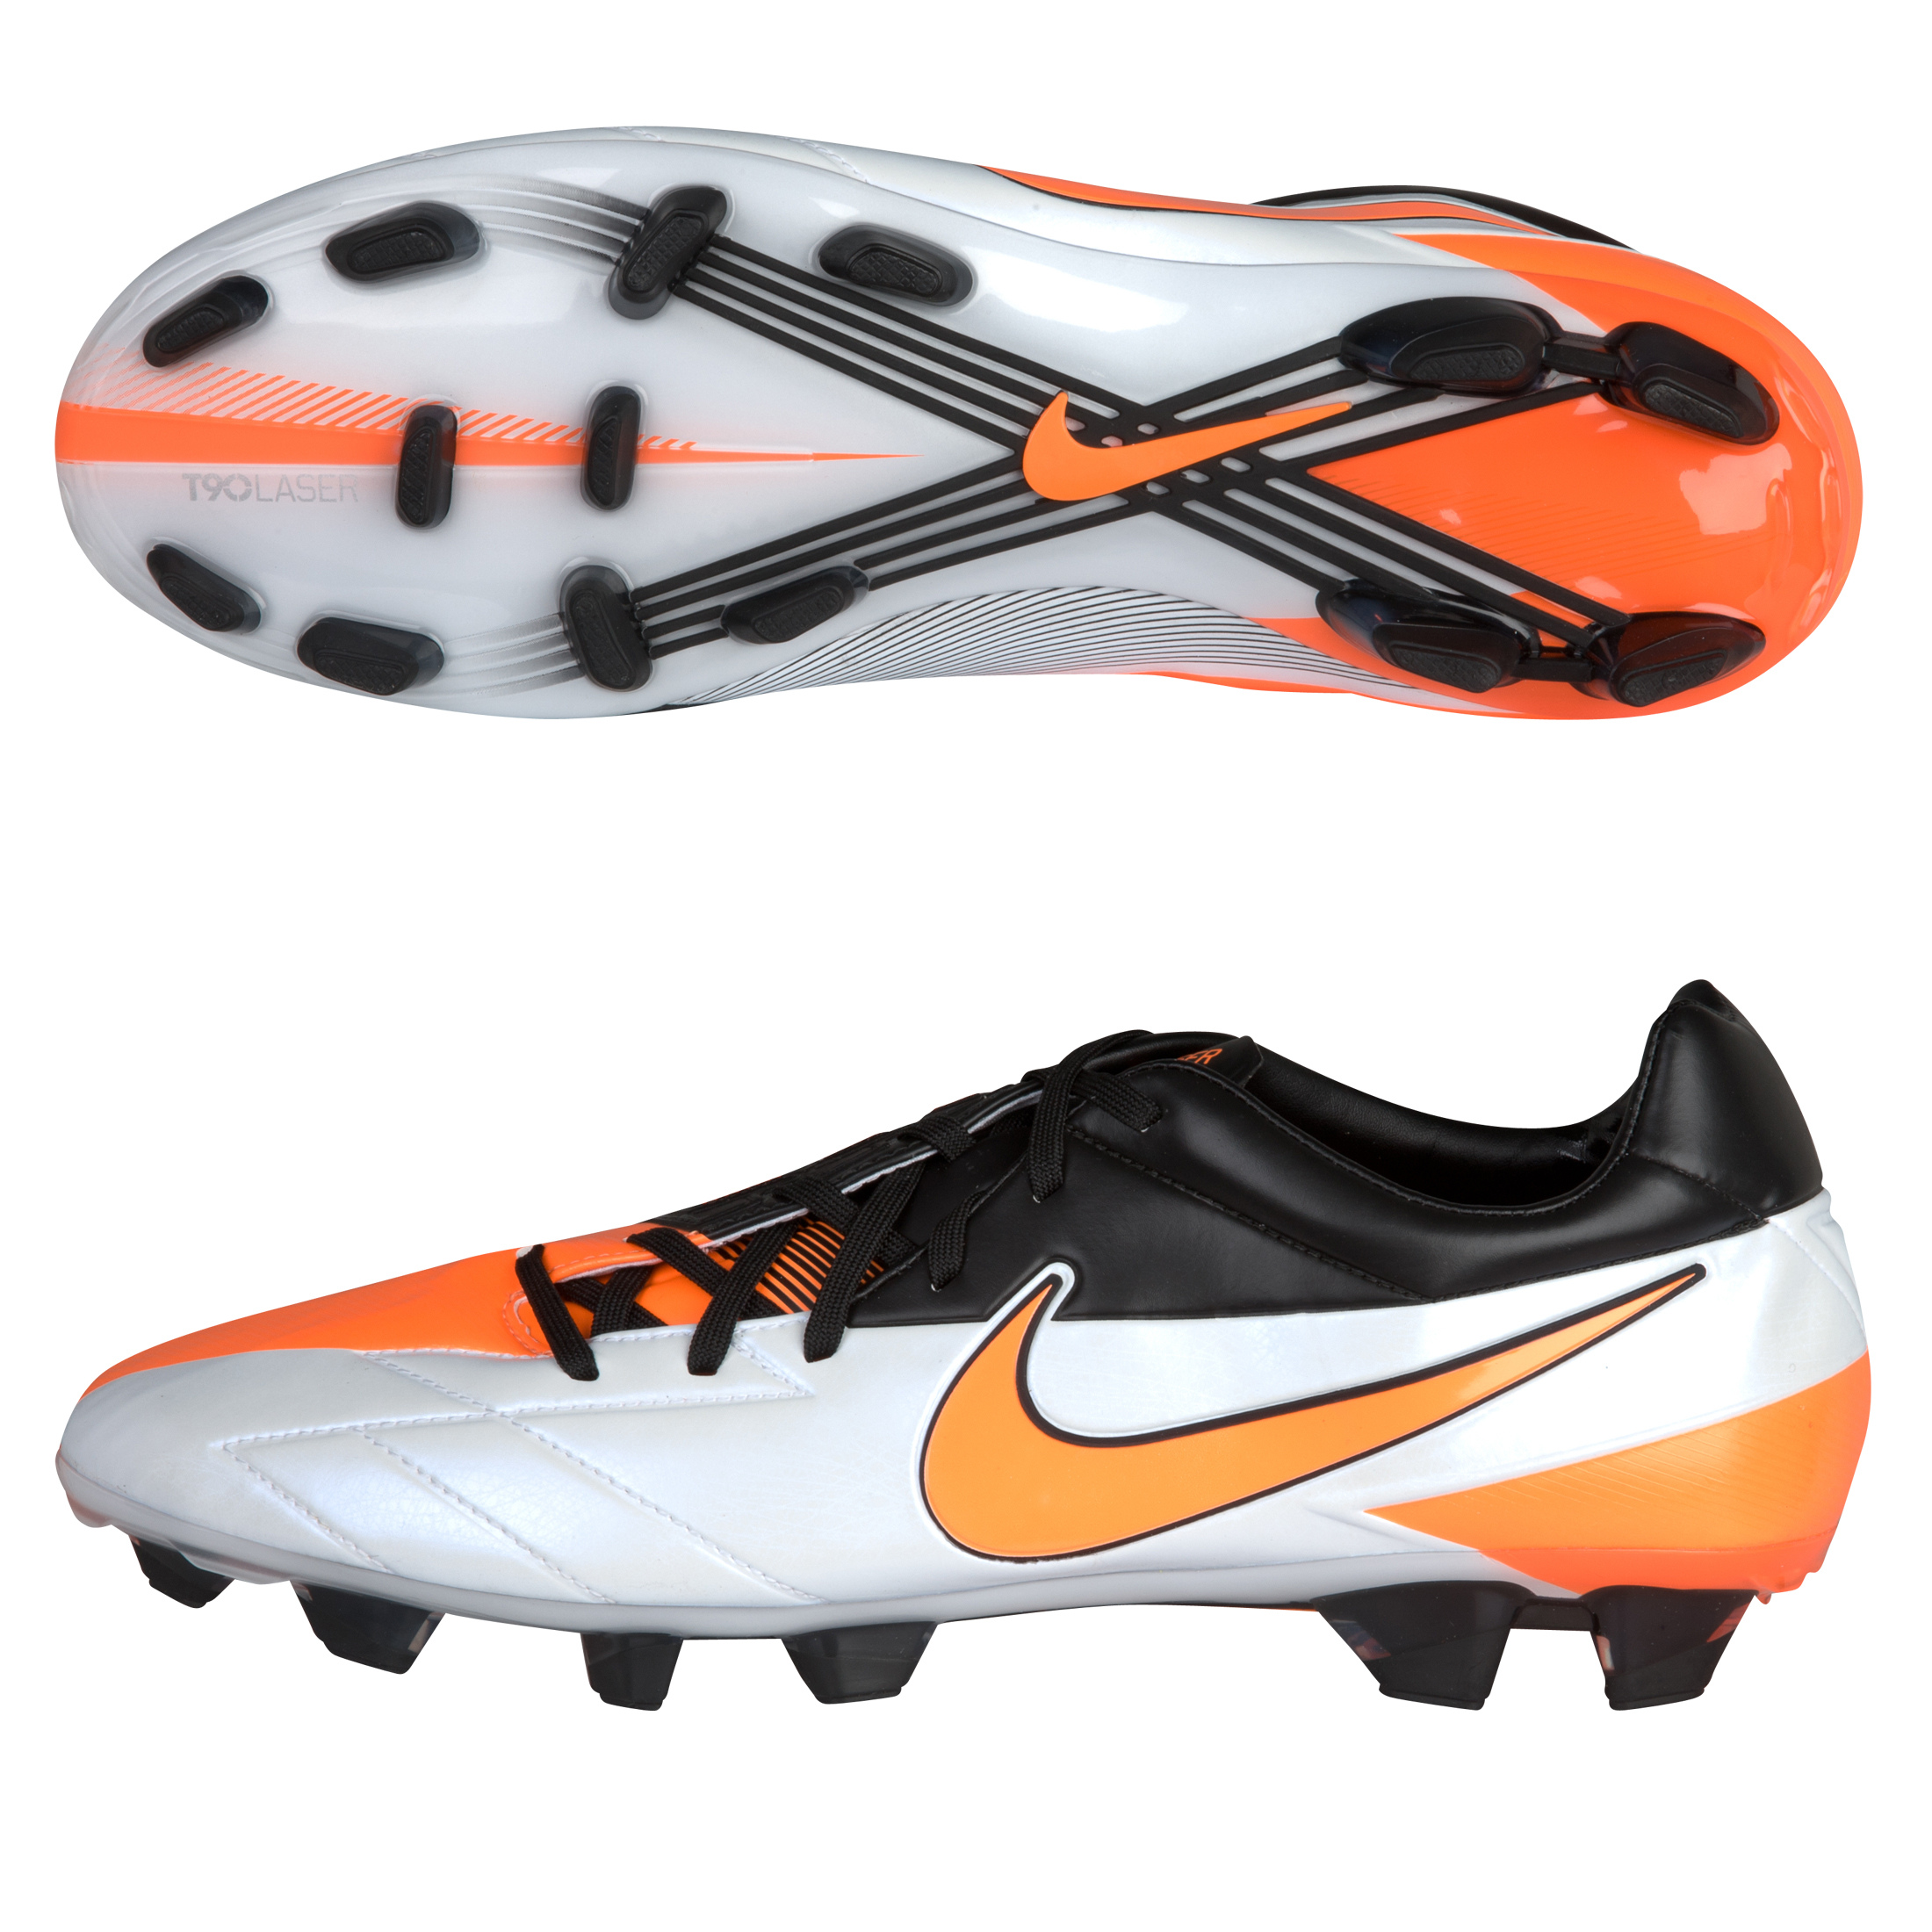 Nike T90 Laser IV Firm Ground Football Boots - White/Total Orange/Black